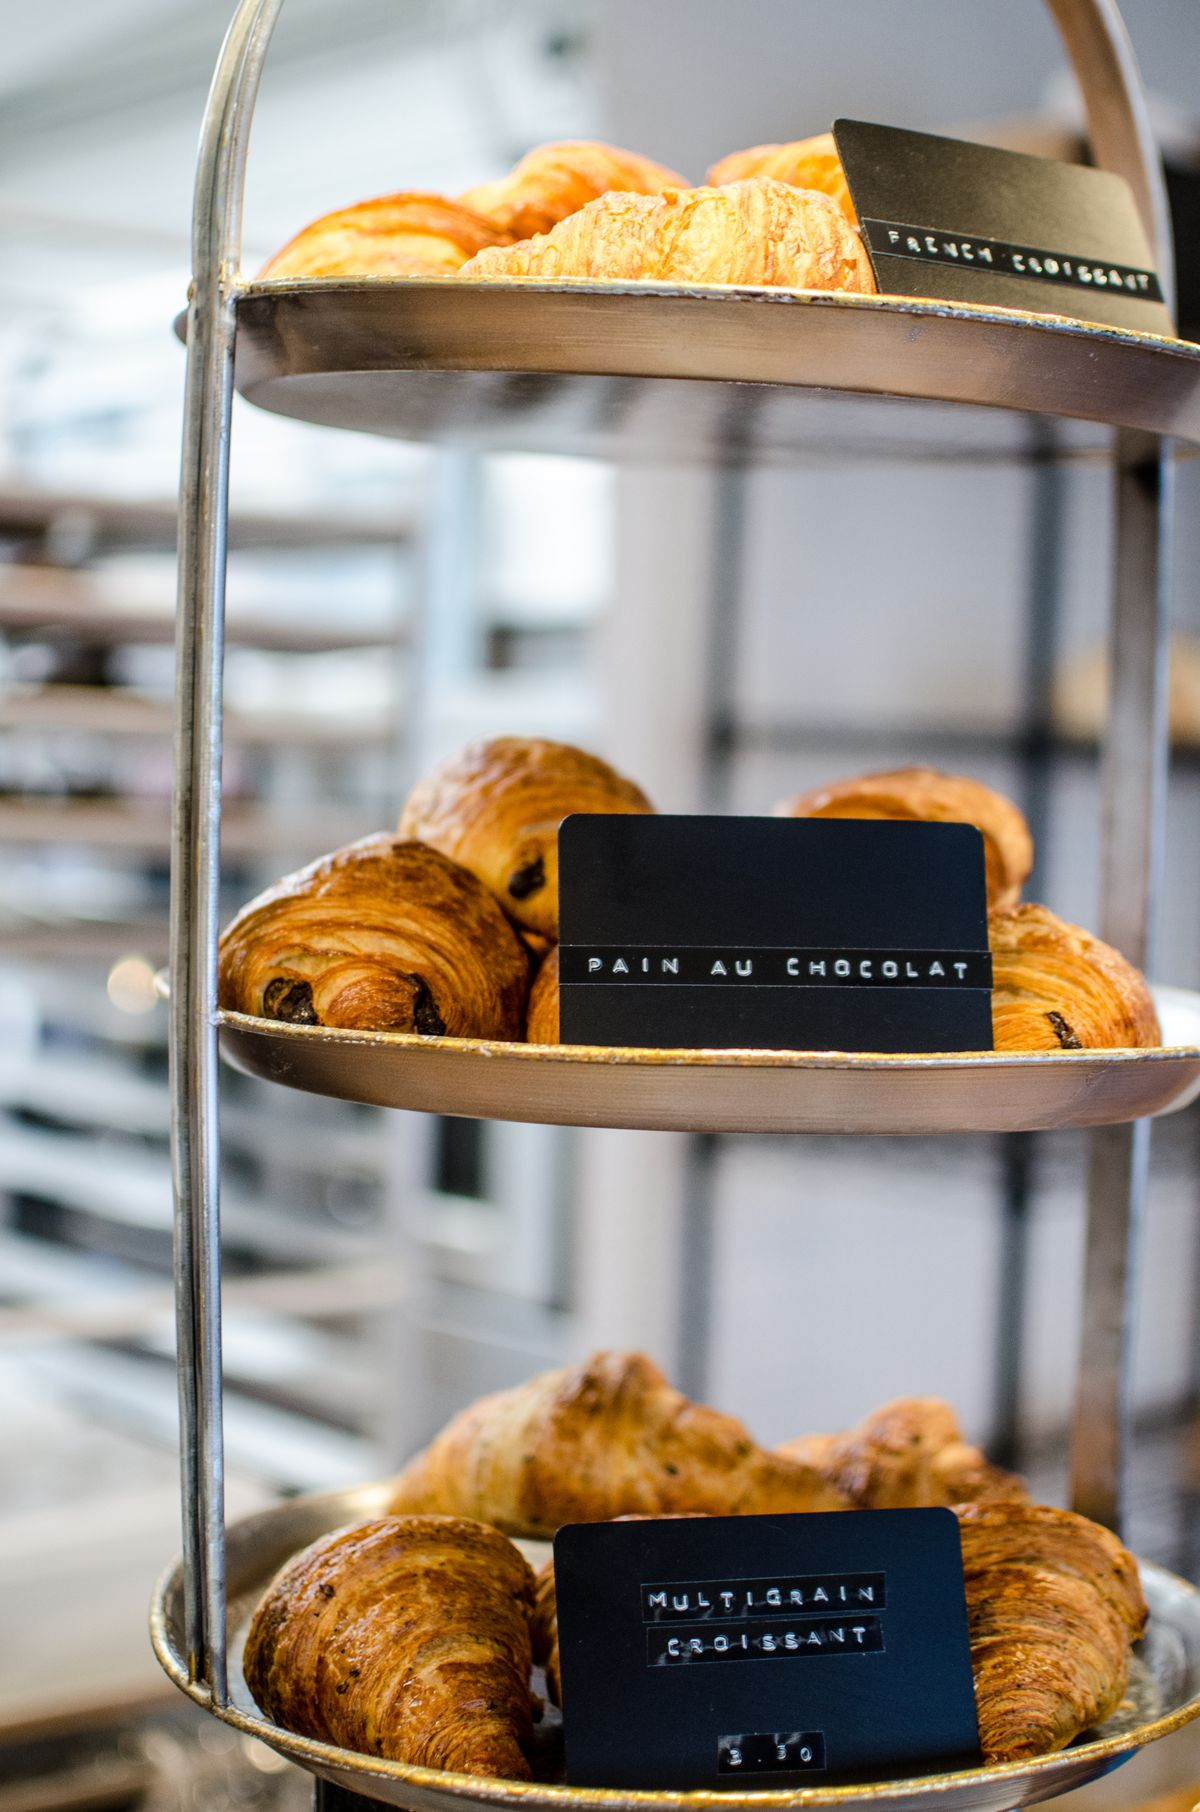 Multigrain croissants, pain au chocolat, and traditional croissants sit on a three-tiered set of metal plates.